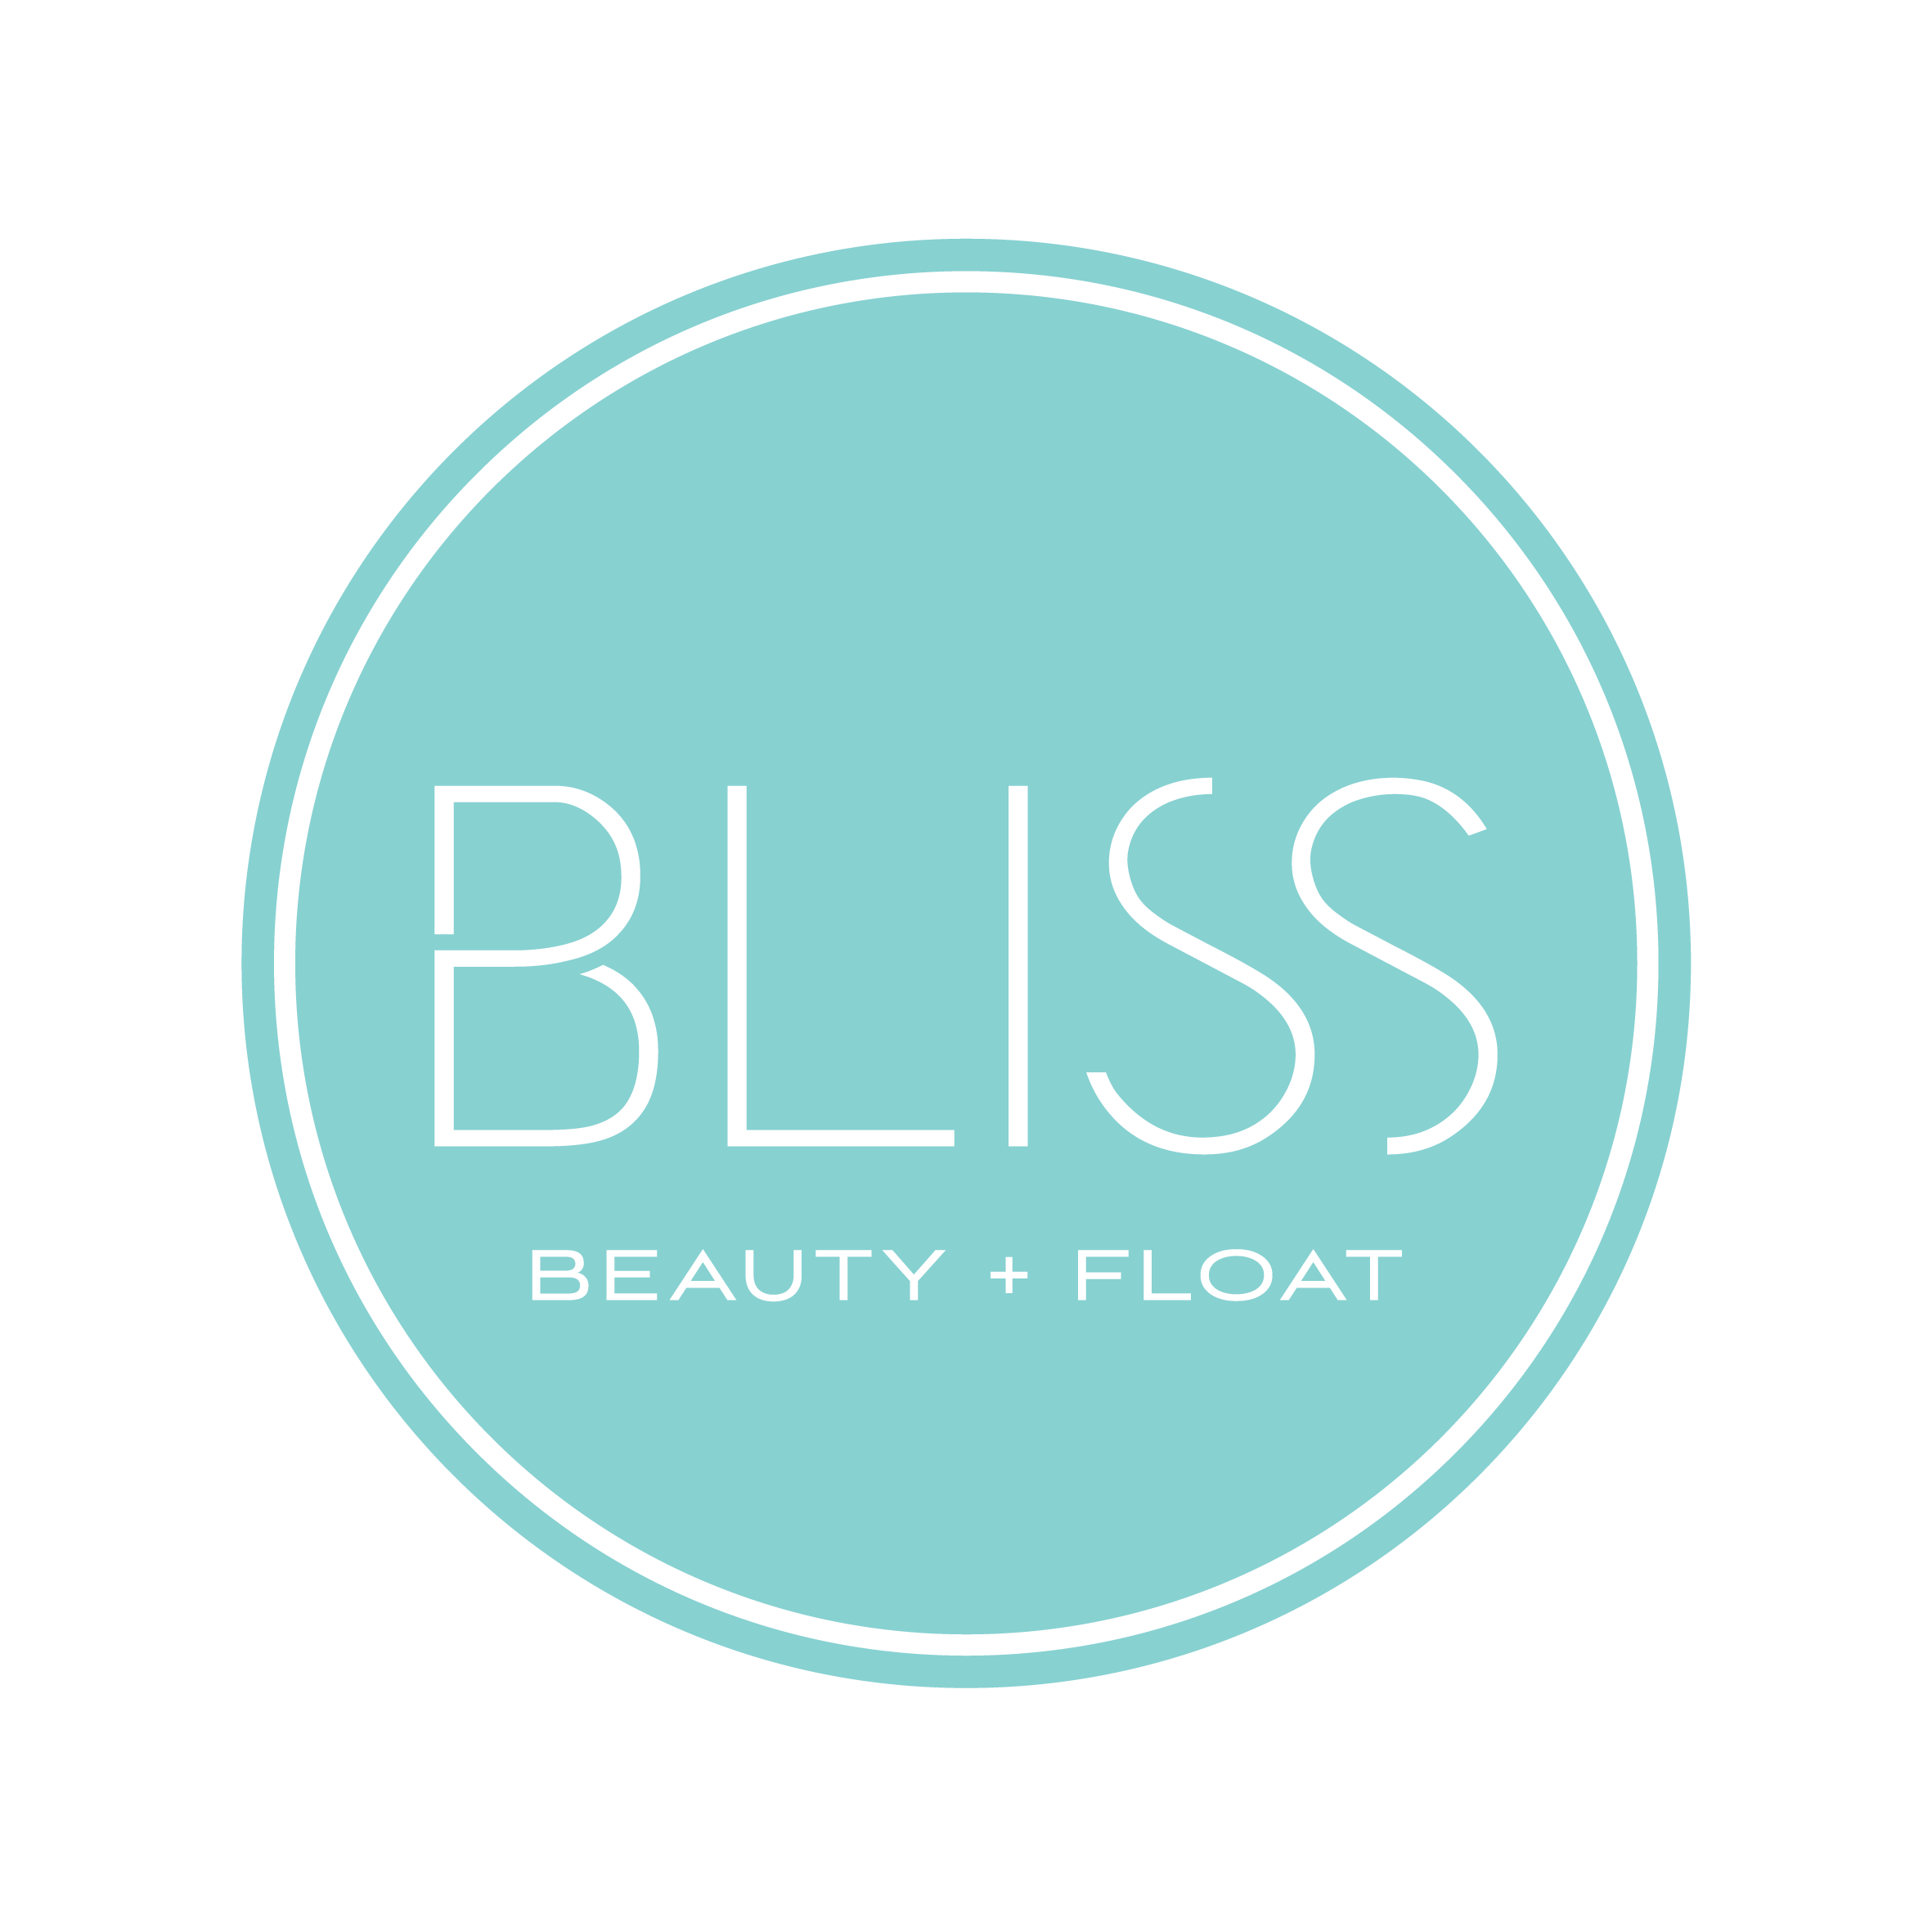 Bliss Beauty + Float